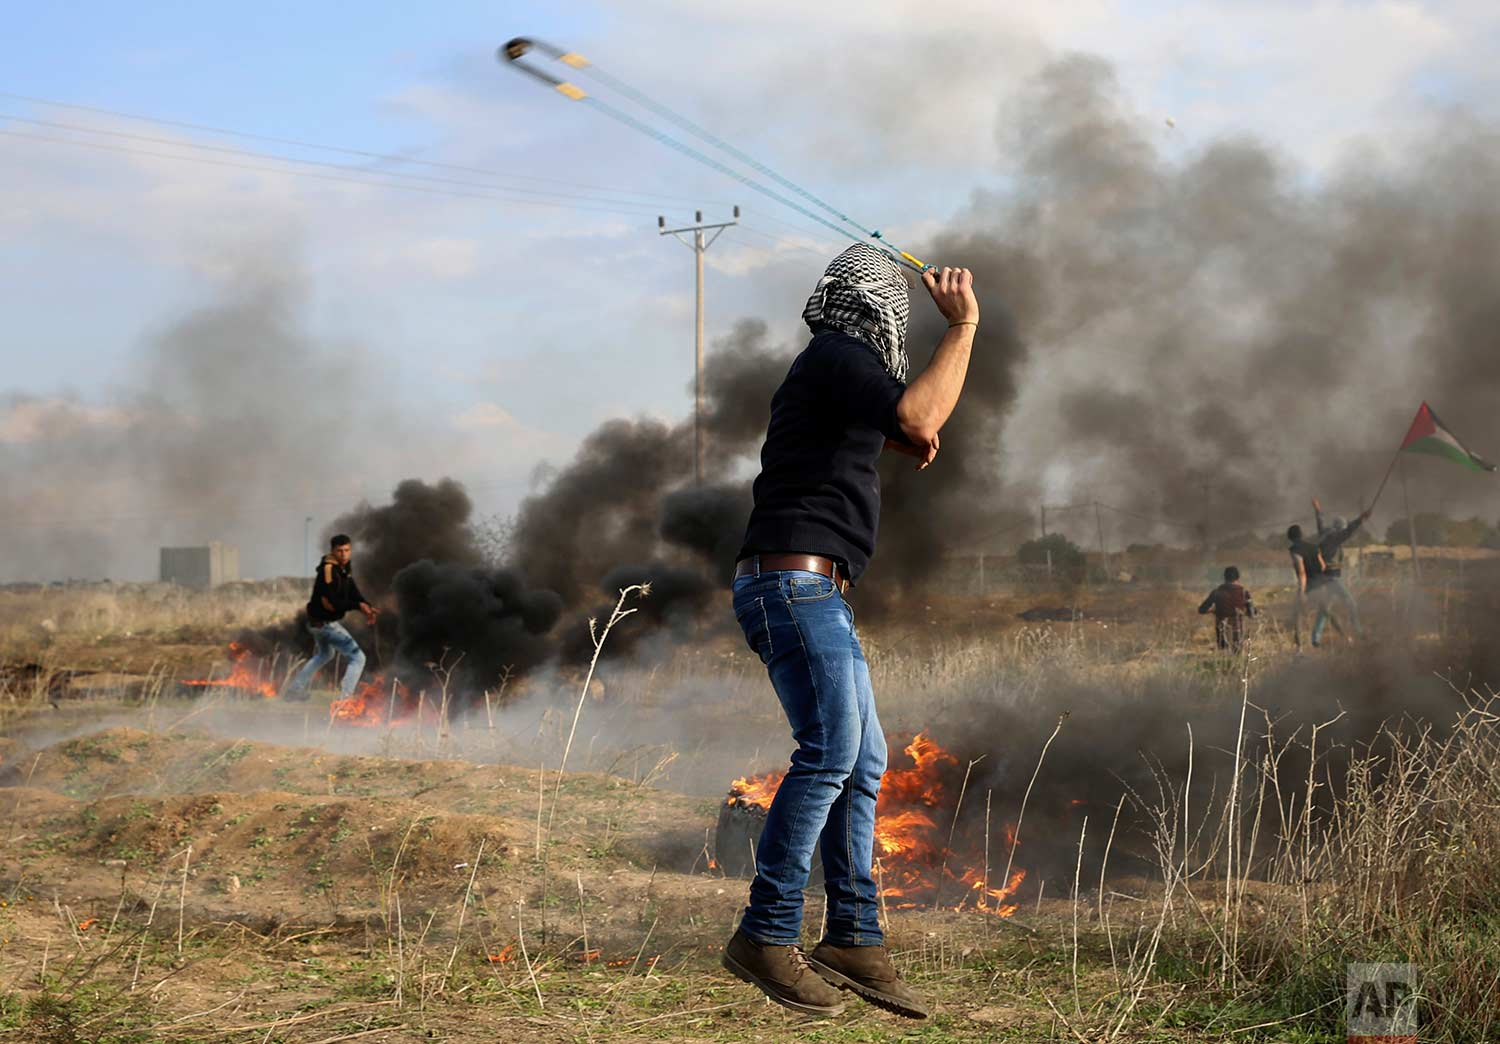 A Palestinian protester slings stones towards Israeli soldiers during clashes on the Israeli border following a protest against U.S. President Donald Trump's decision to recognize Jerusalem as the capital of Israel, east of Gaza City, Friday, Dec. 15, 2017. (AP Photo/Adel Hana)